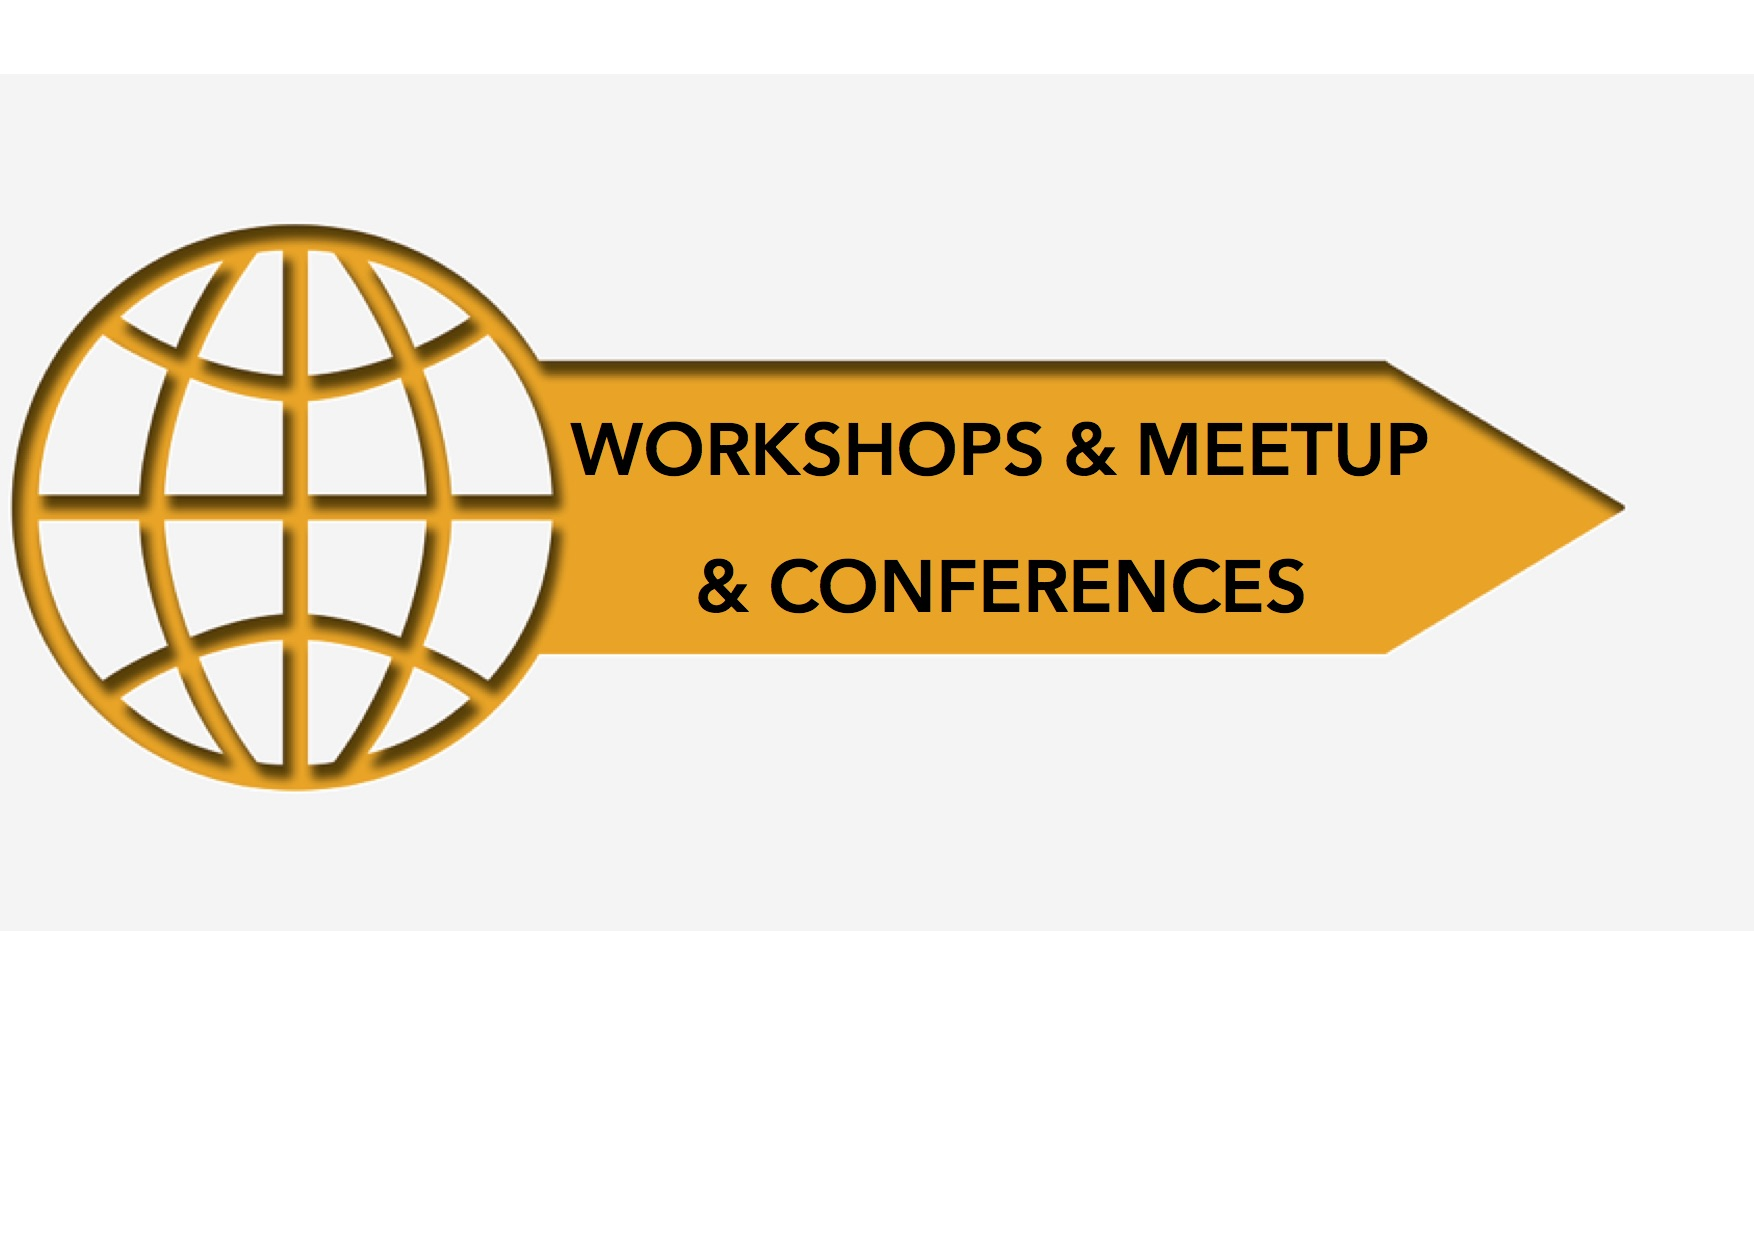 workshop-meet-up-conference